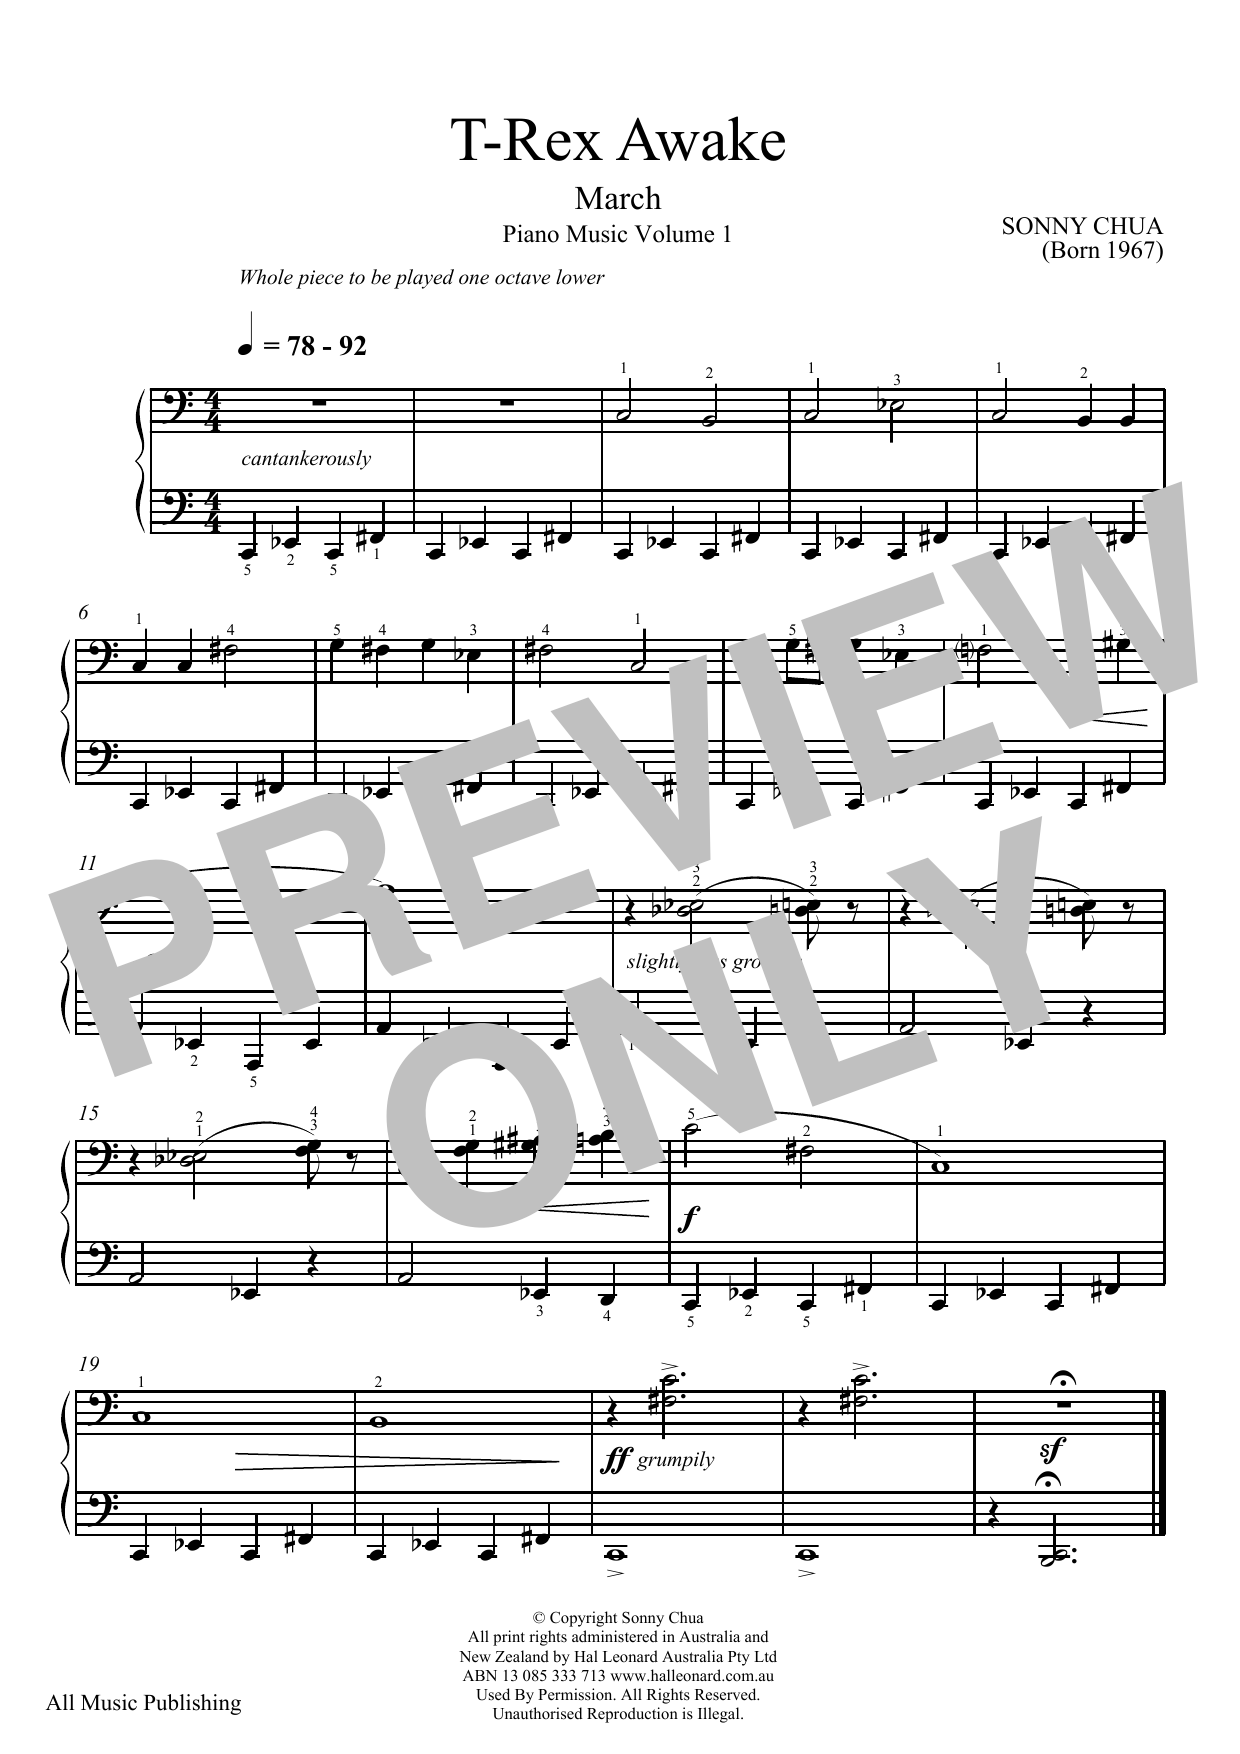 Sonny Chua T-Rex Awake (From Piano Music Vol 1) sheet music notes and chords